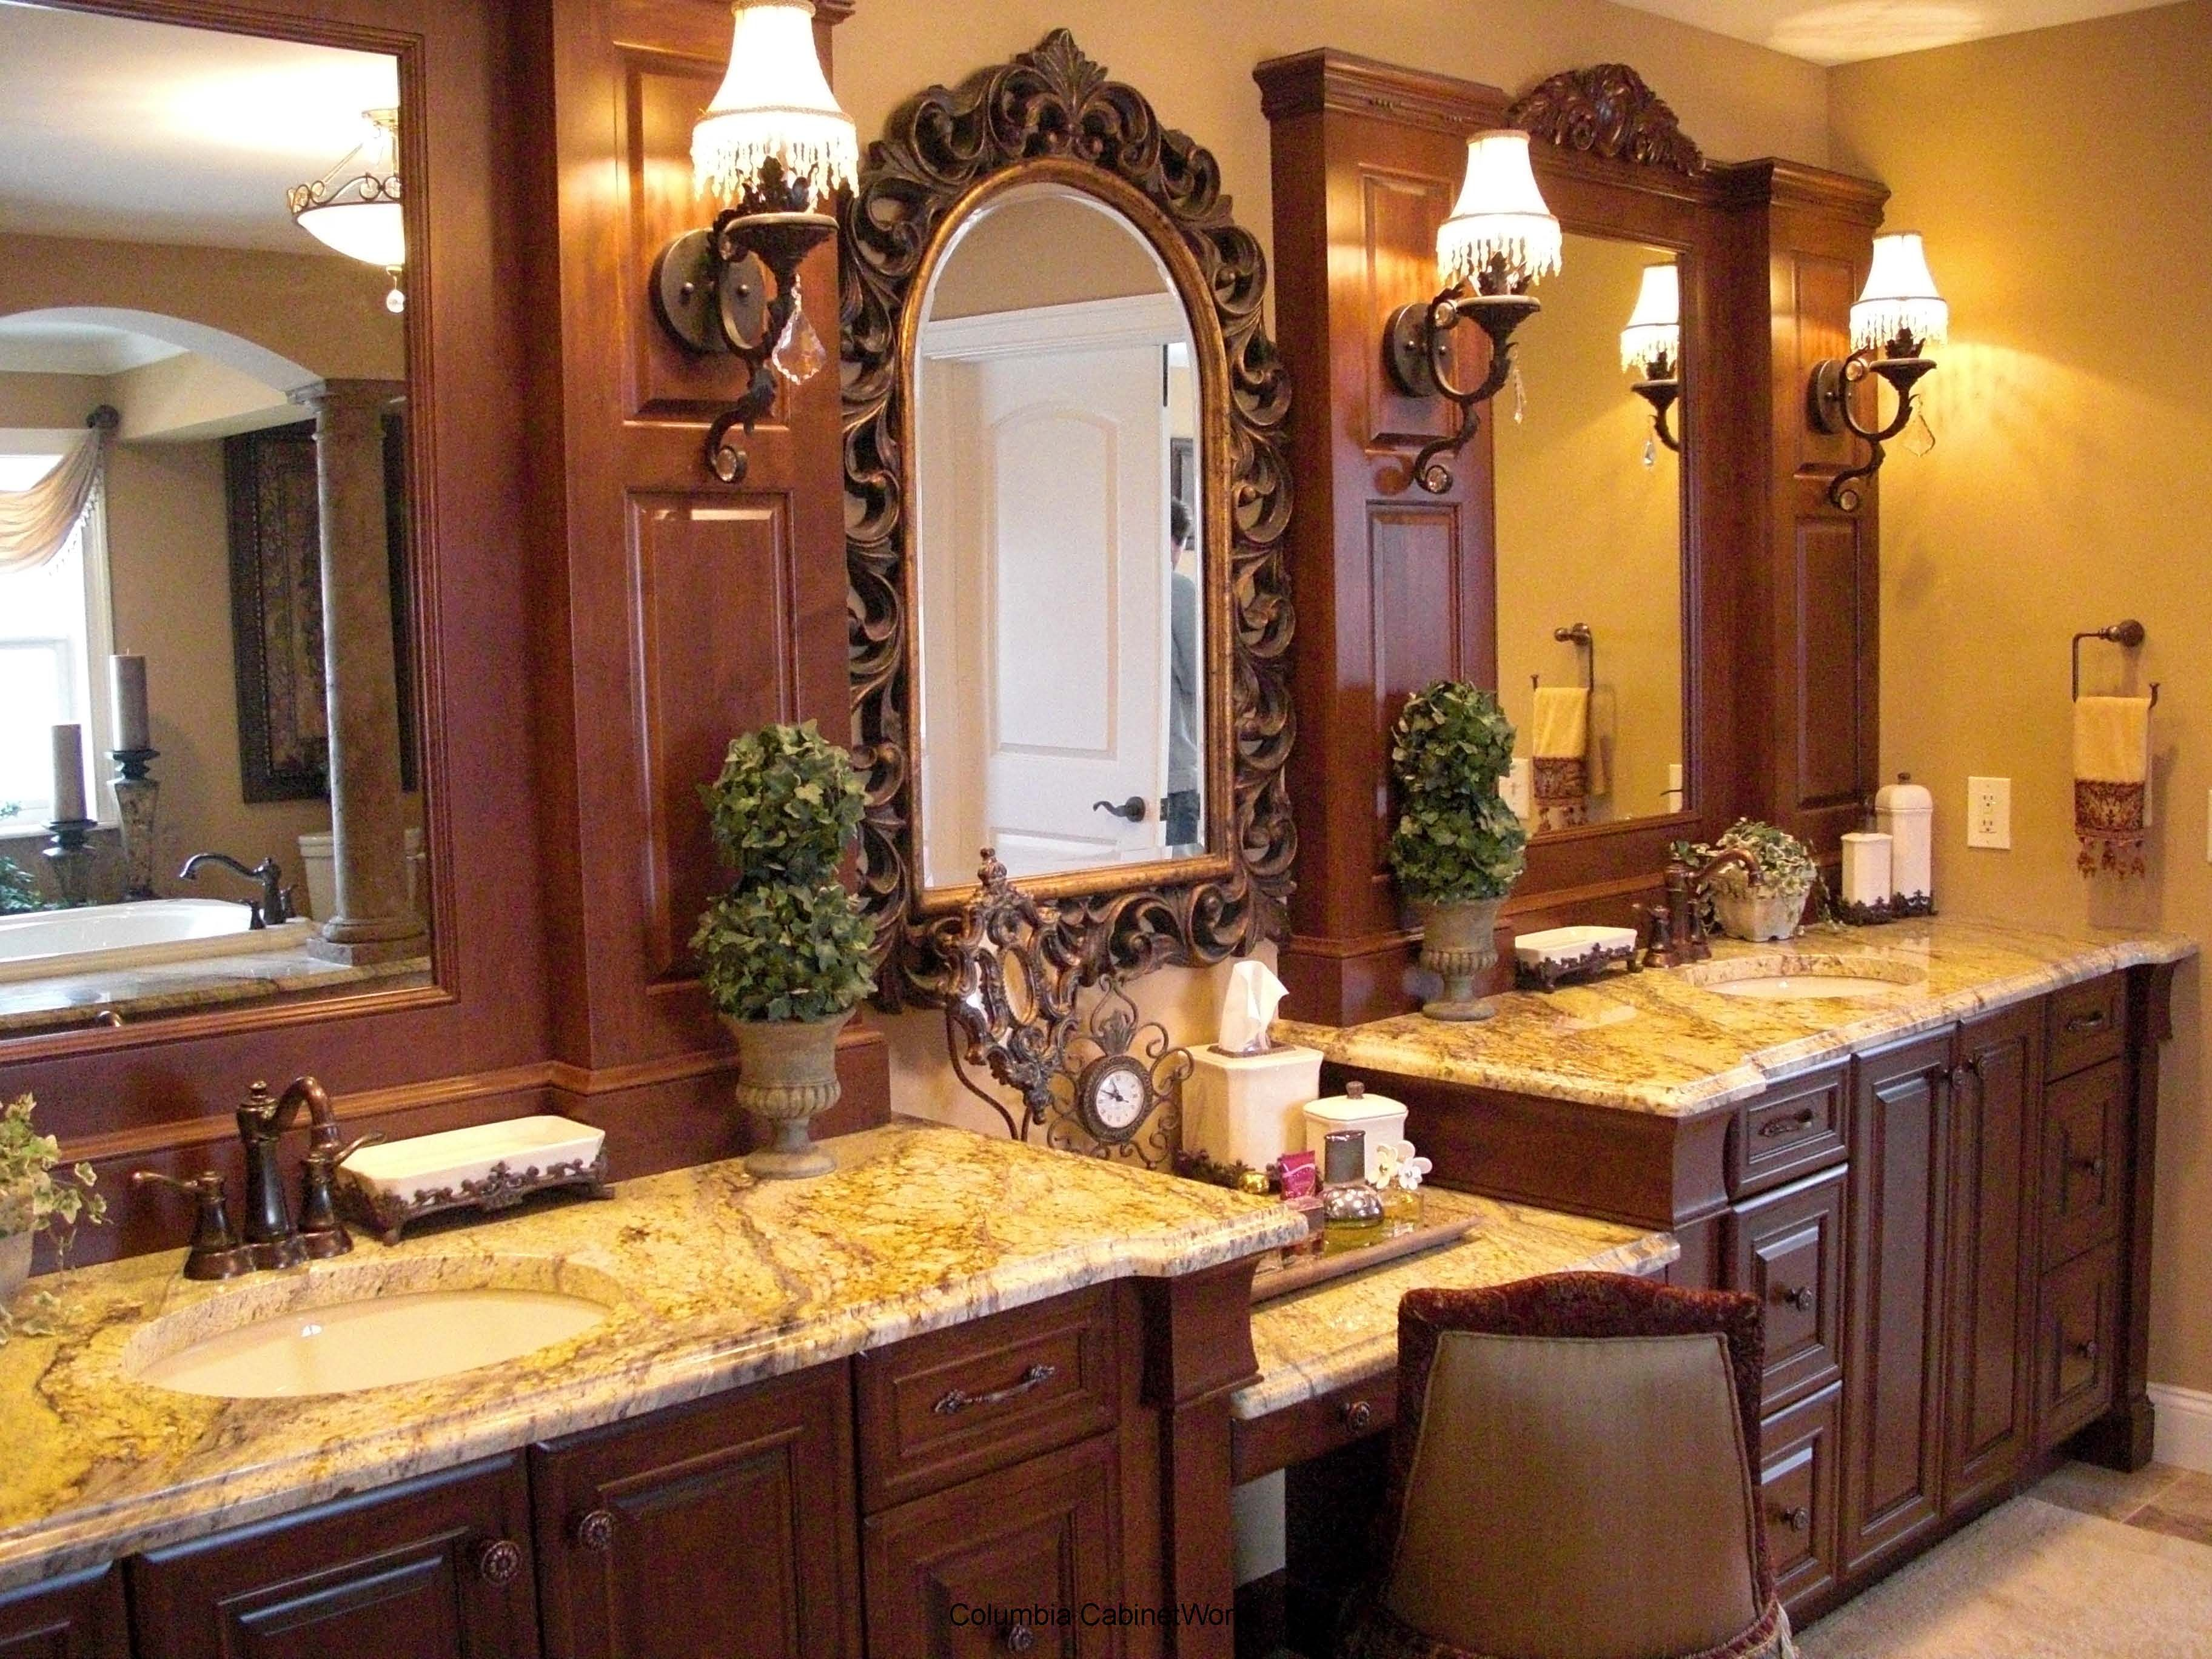 Browse Bathroom Designs And Decorating Ideas Discover Inspiration - Antique bronze bathroom mirrors for bathroom decor ideas